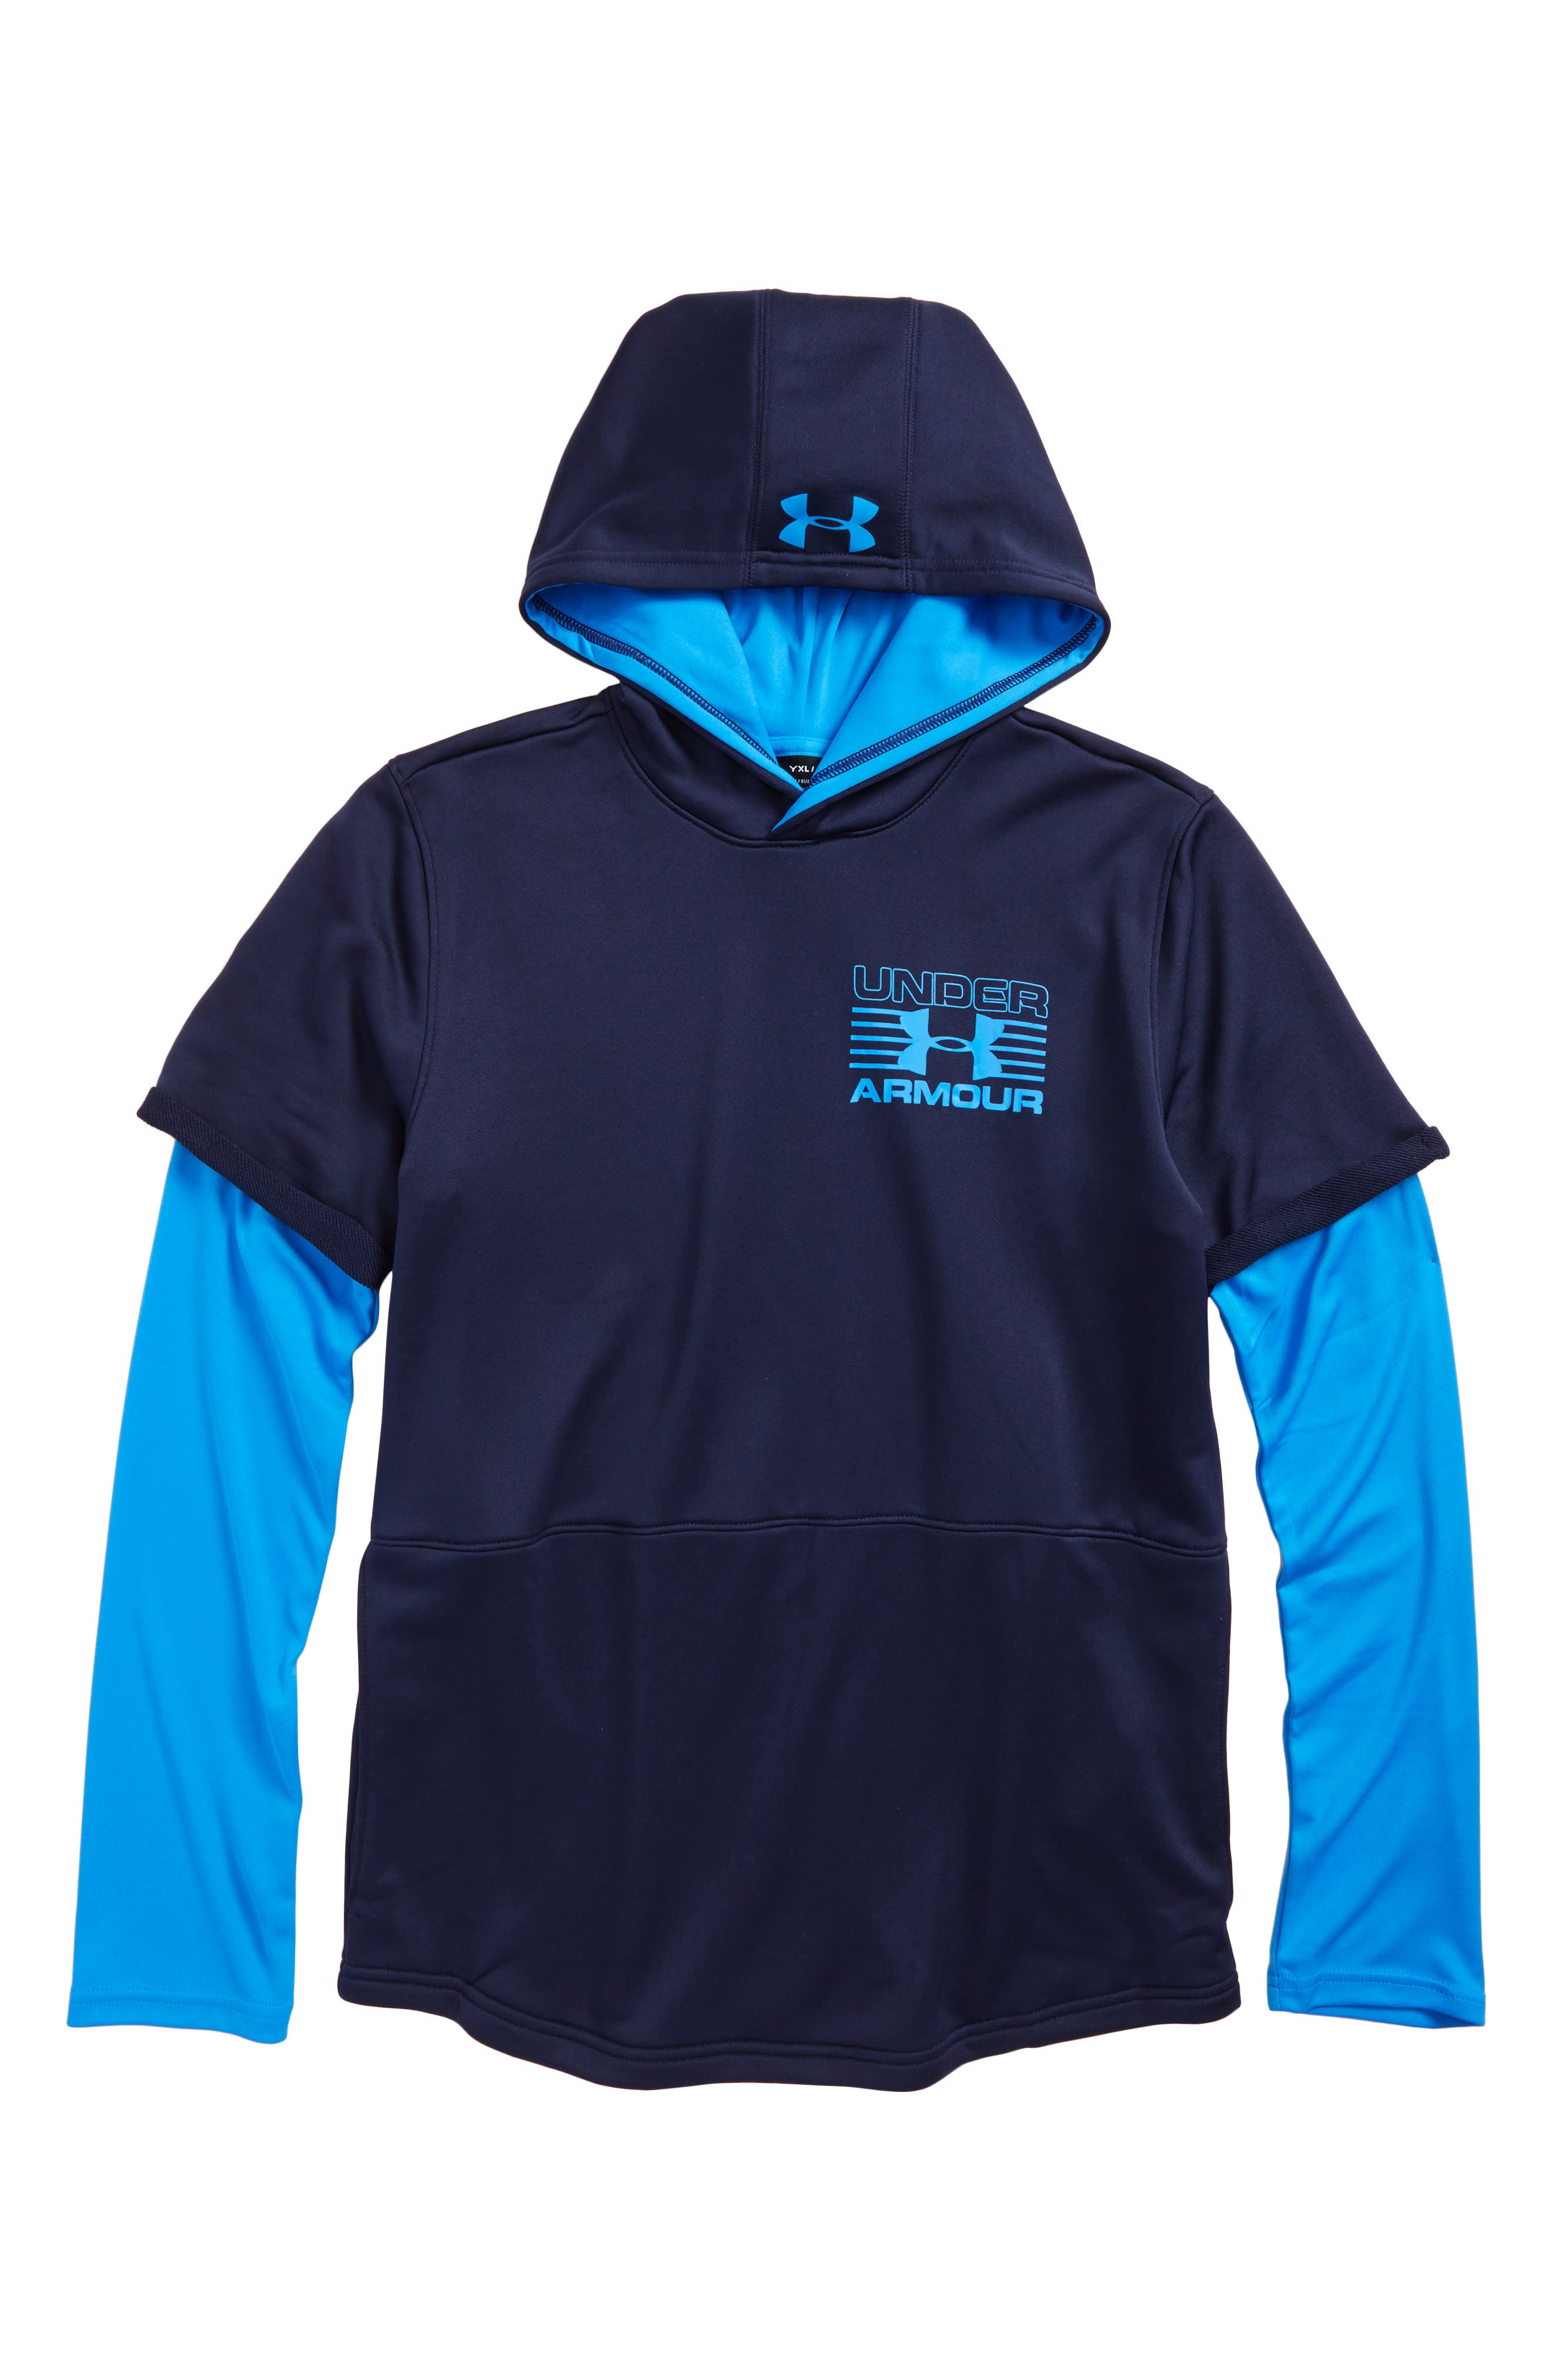 Alternate Image 1 Selected - Under Armour Train to Game Layered ColdGear® Hoodie (Little Boys & Big Boys)